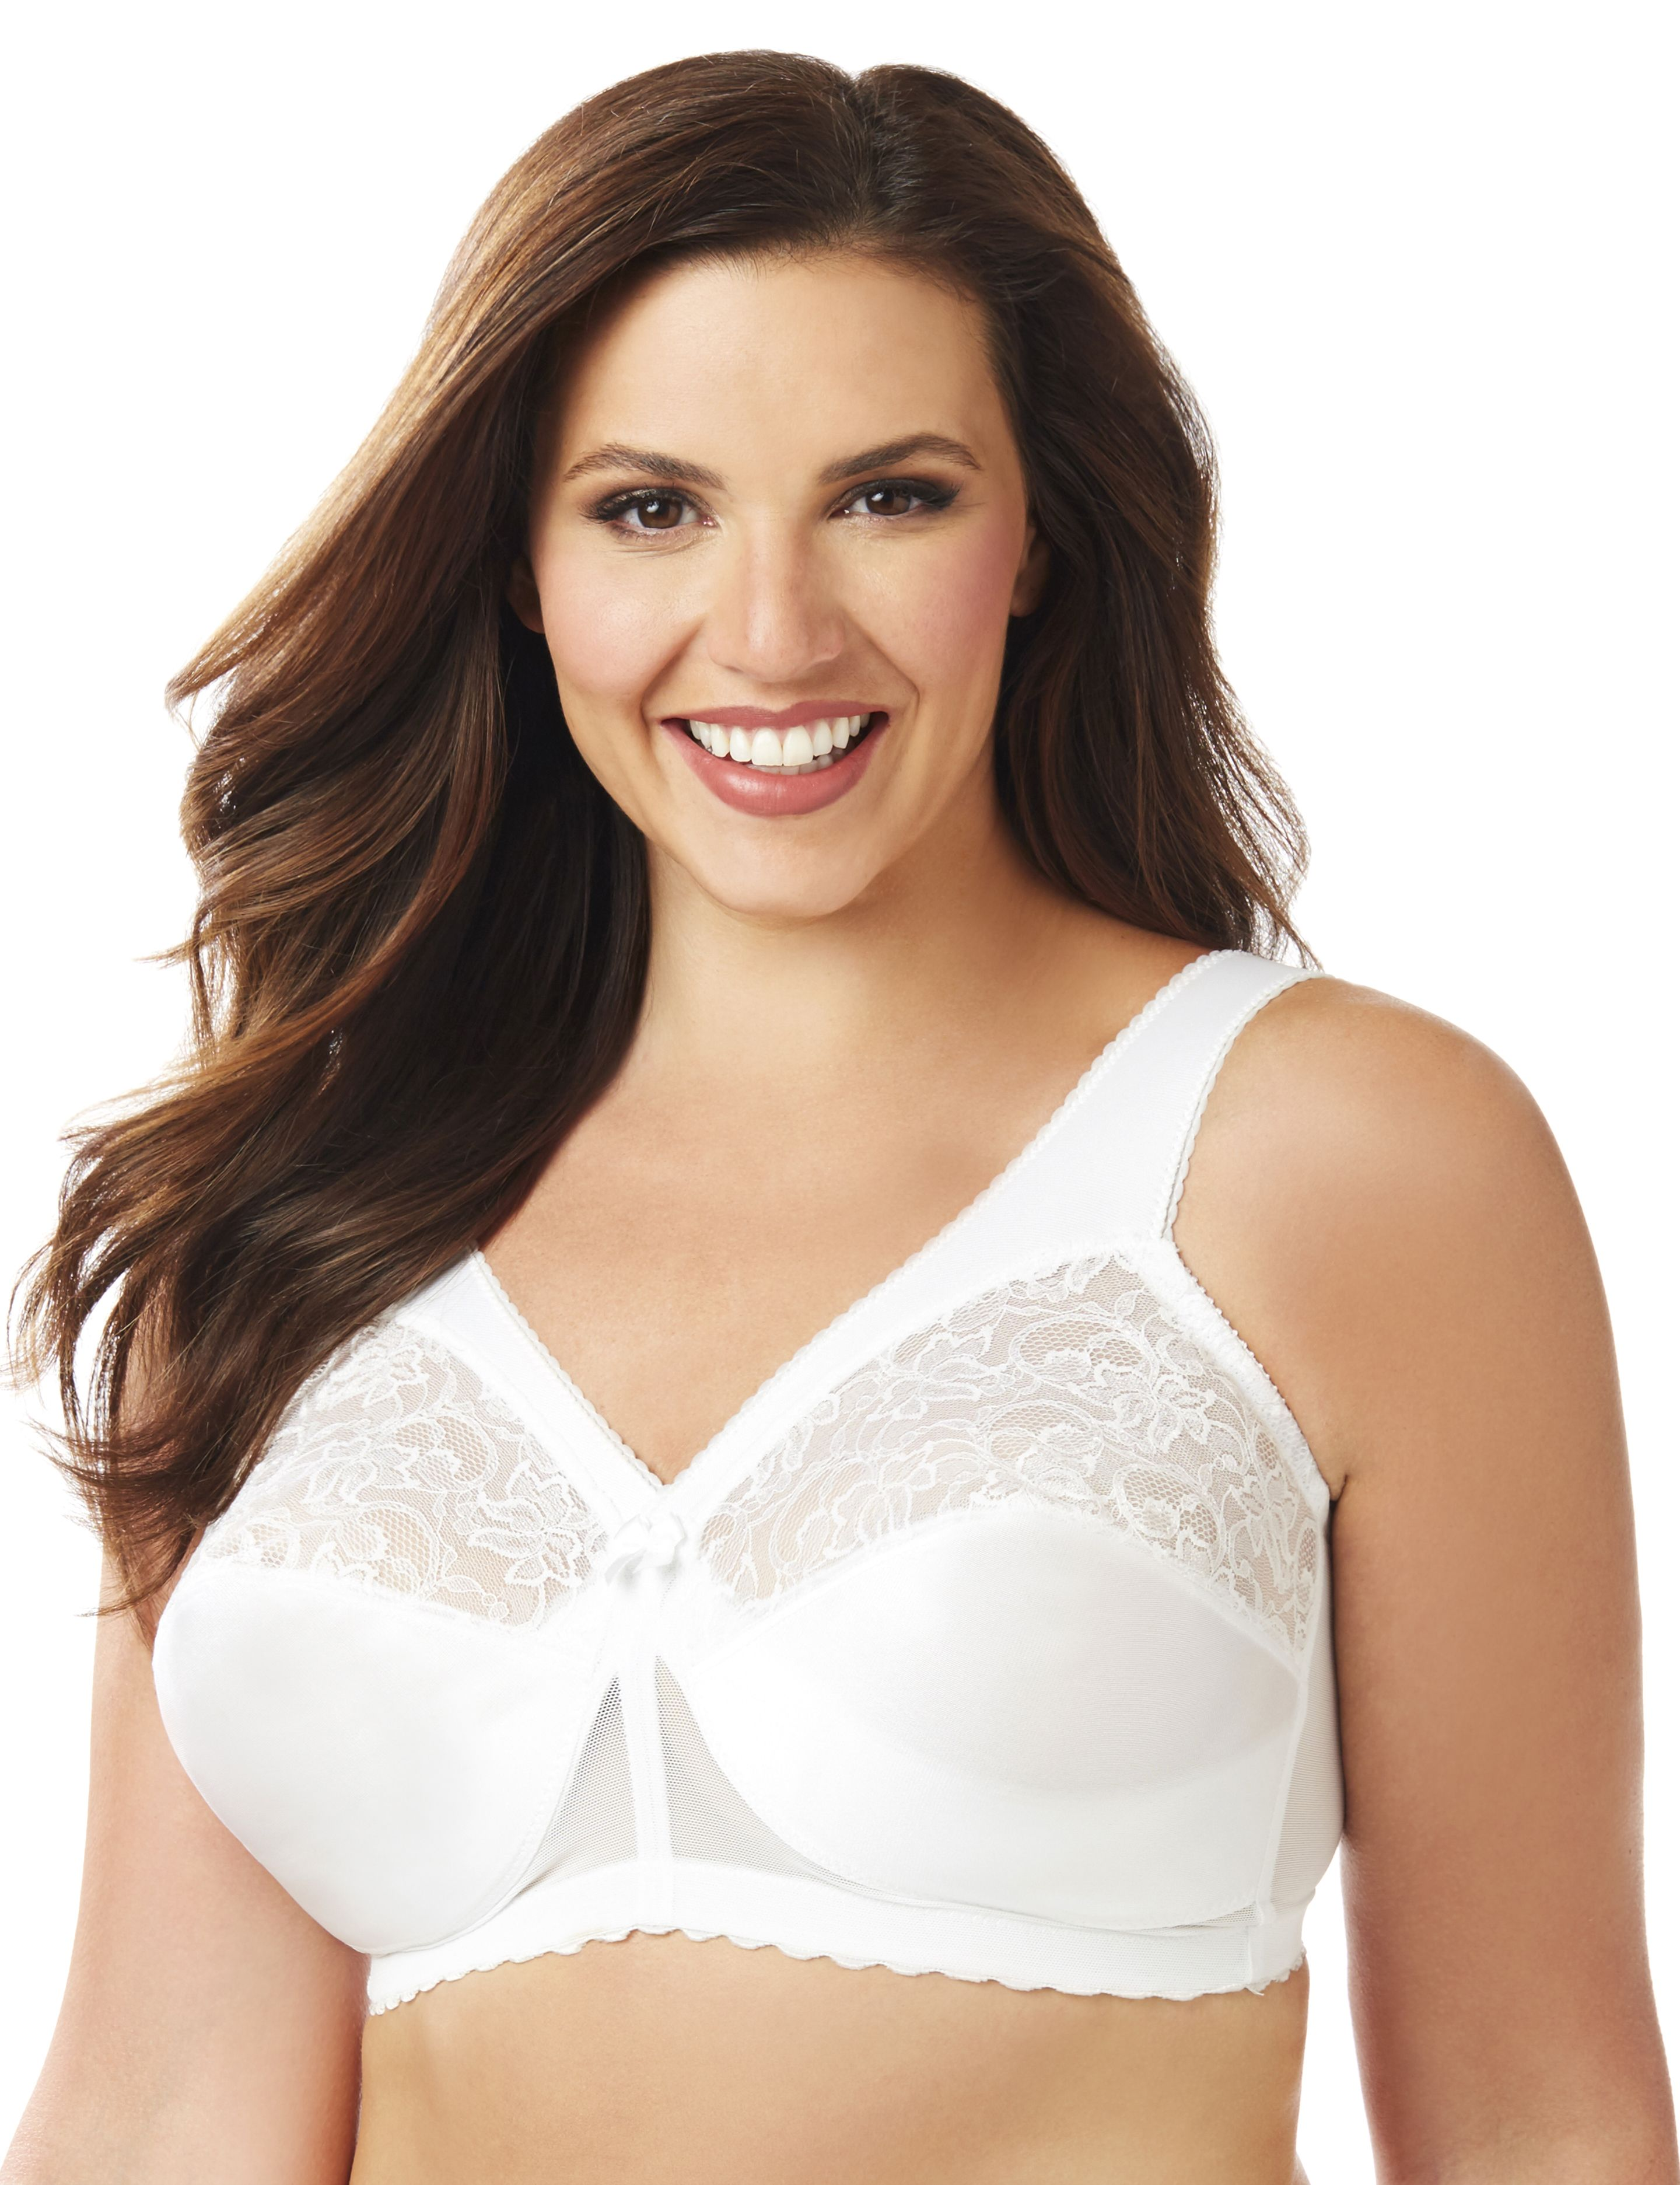 Glamorise 1000 Magic Lift No-Wire Bra Glamorise 1000 Magic Lift No-Wire Bra MP-000156866